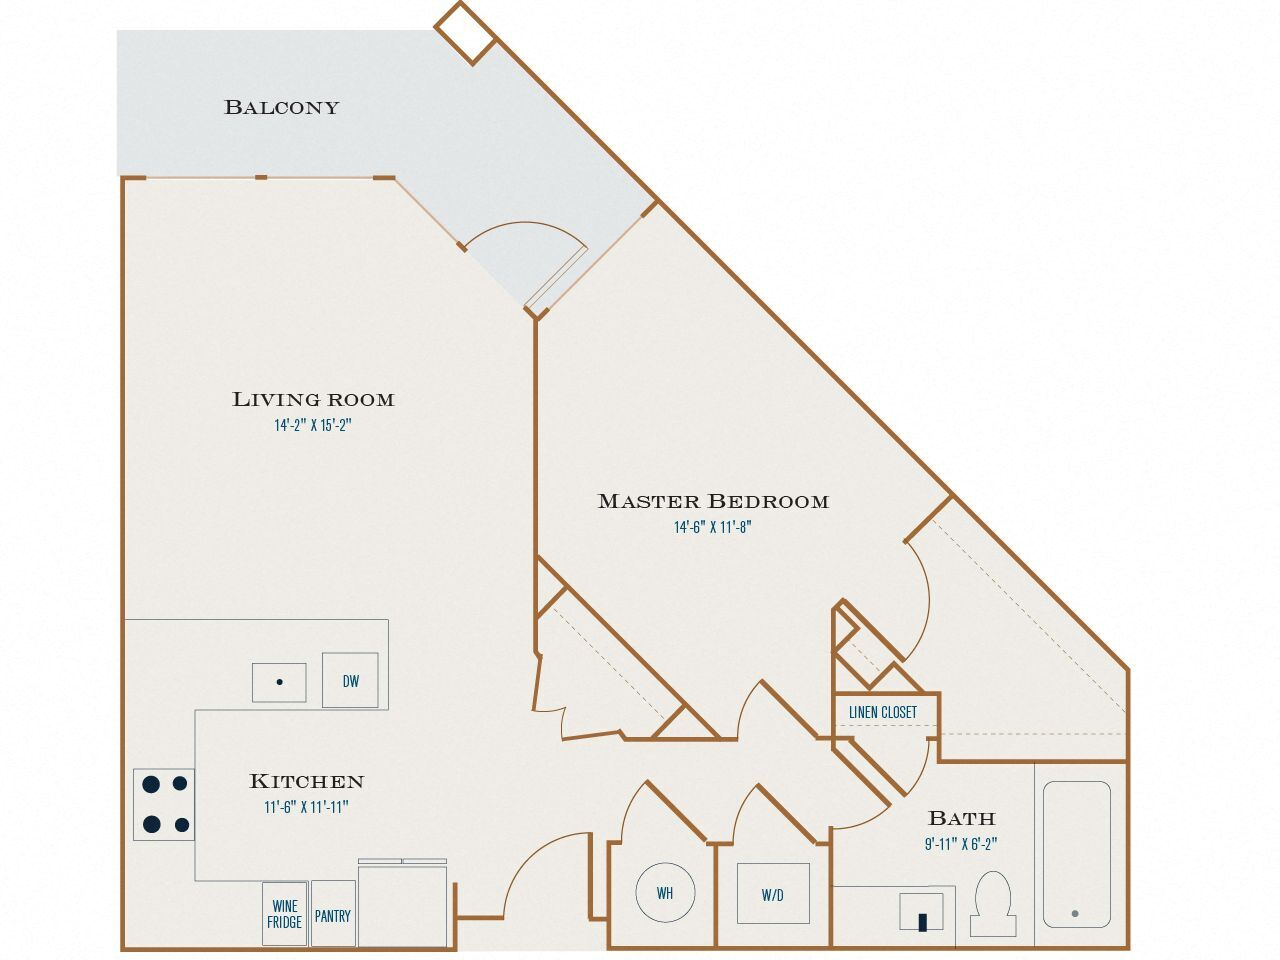 A Four floor plan diagram. One bedroom, one bathroom, an open kitchen and living area, a balcony, and a washer dryer.